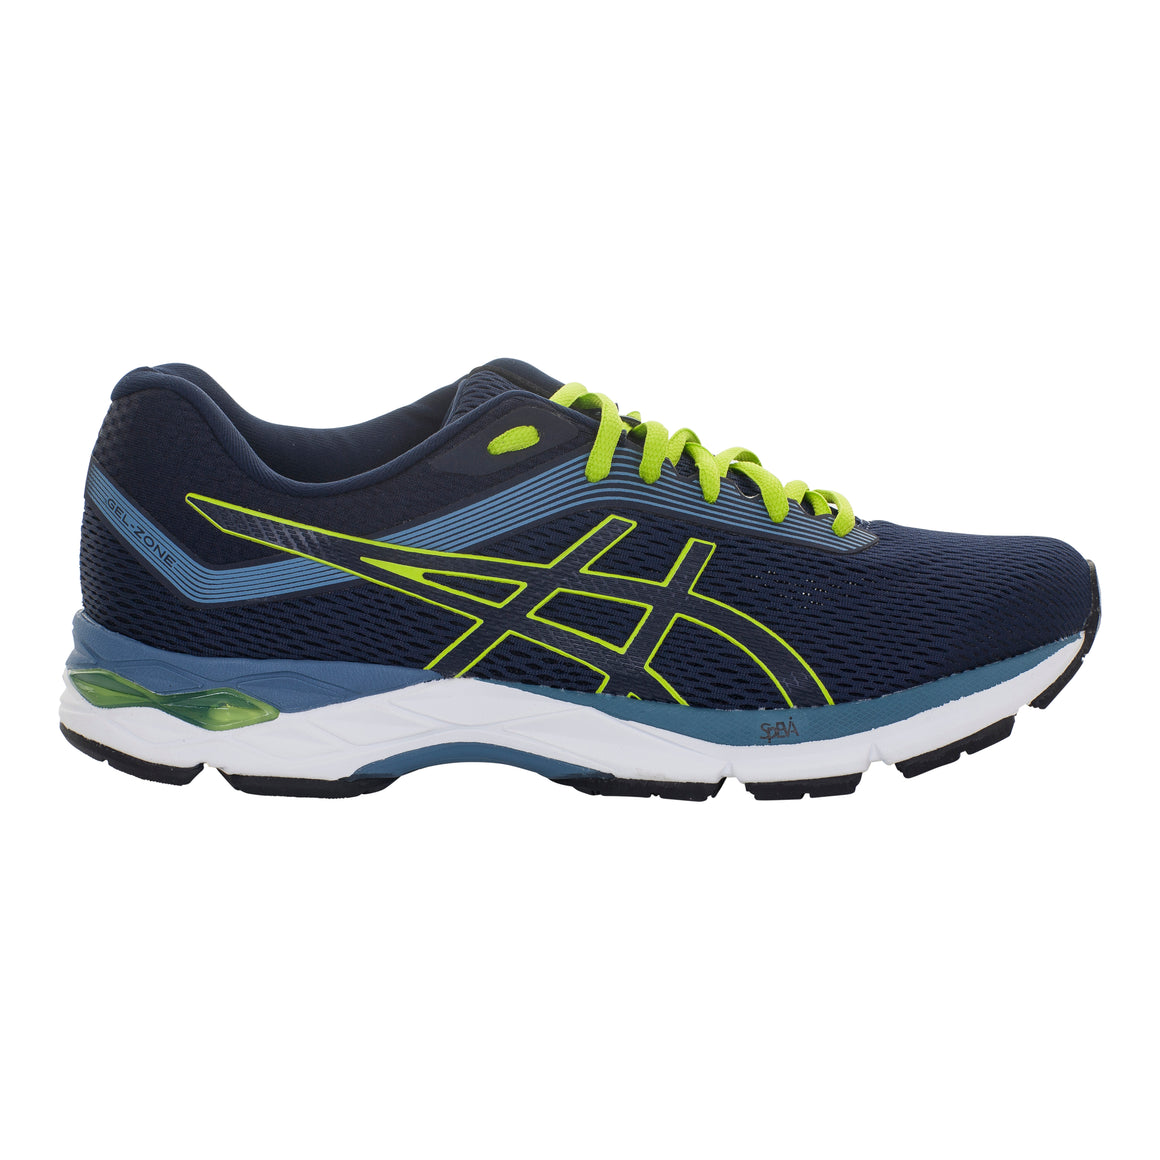 Gel-Zone 7 Running Shoes for Men in Grey Floss/Lime Zest